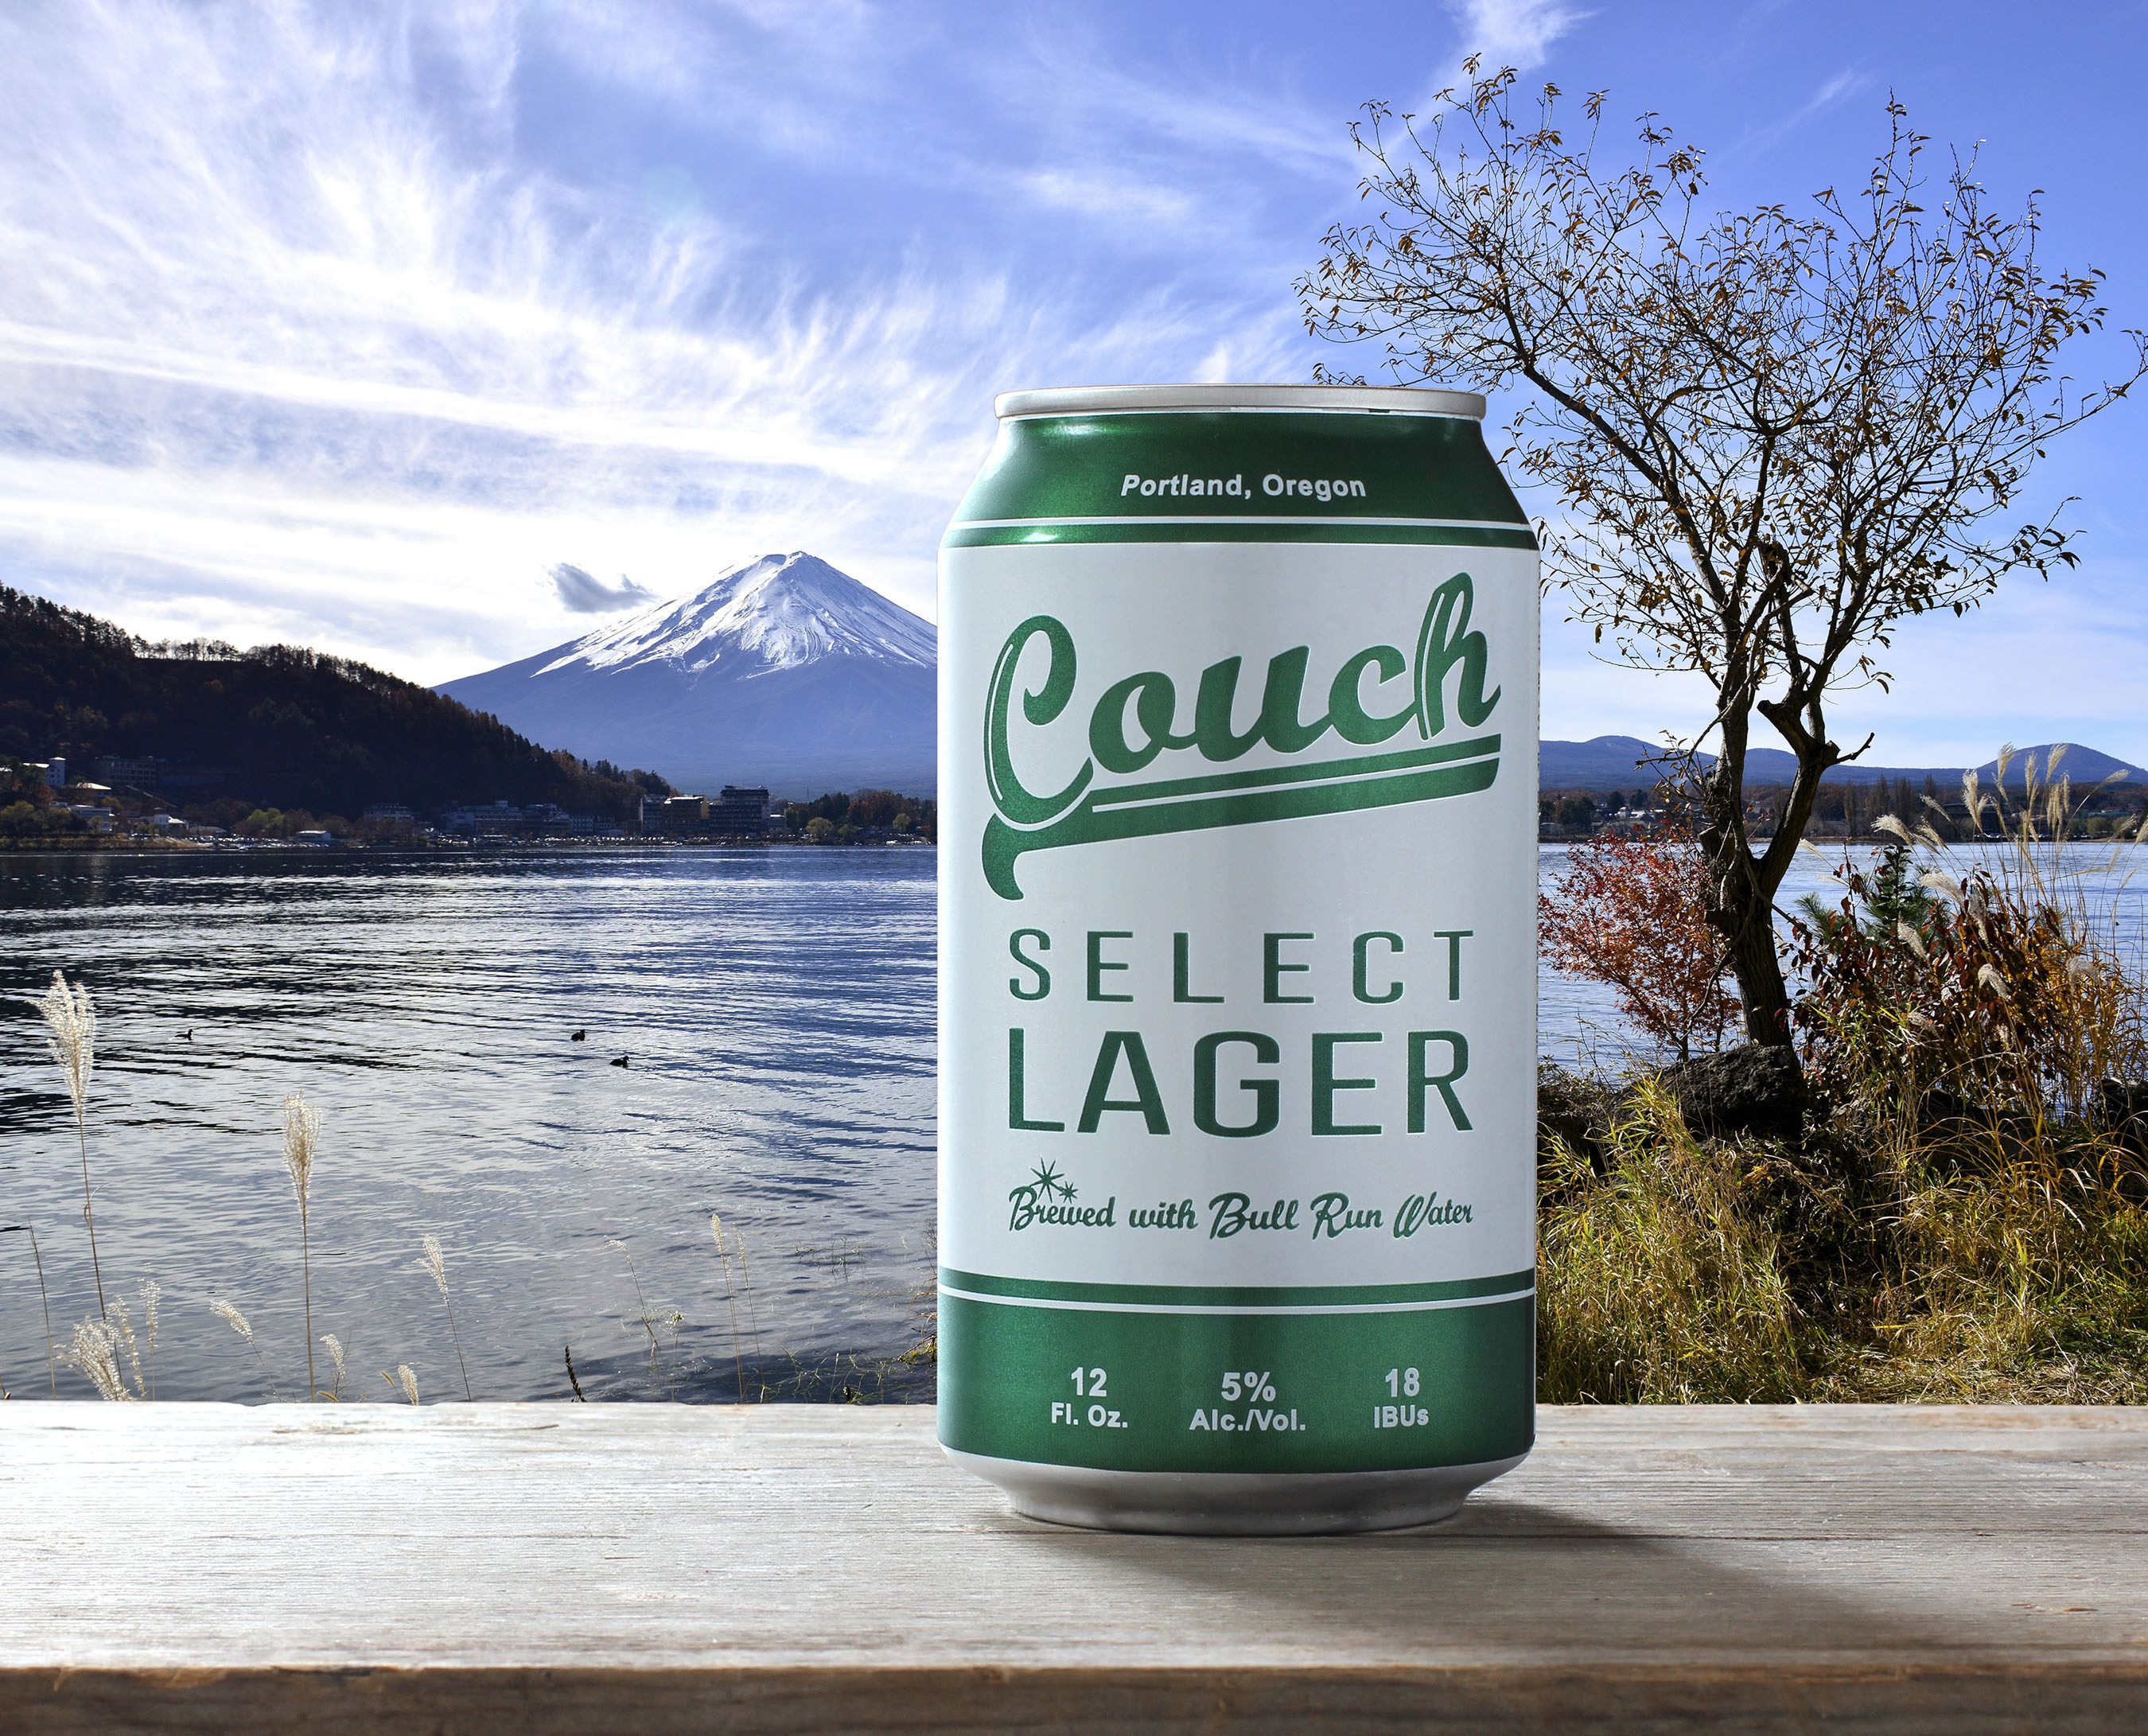 Burnside Brewing Co. has launched Couch Select Lager in Rexam 12 oz. cans. This introduction is the brewery's first foray into single serve packaging. (PRNewsFoto/Rexam) THIS CONTENT IS PROVIDED BY PRNewsfoto and is for EDITORIAL USE ONLY**